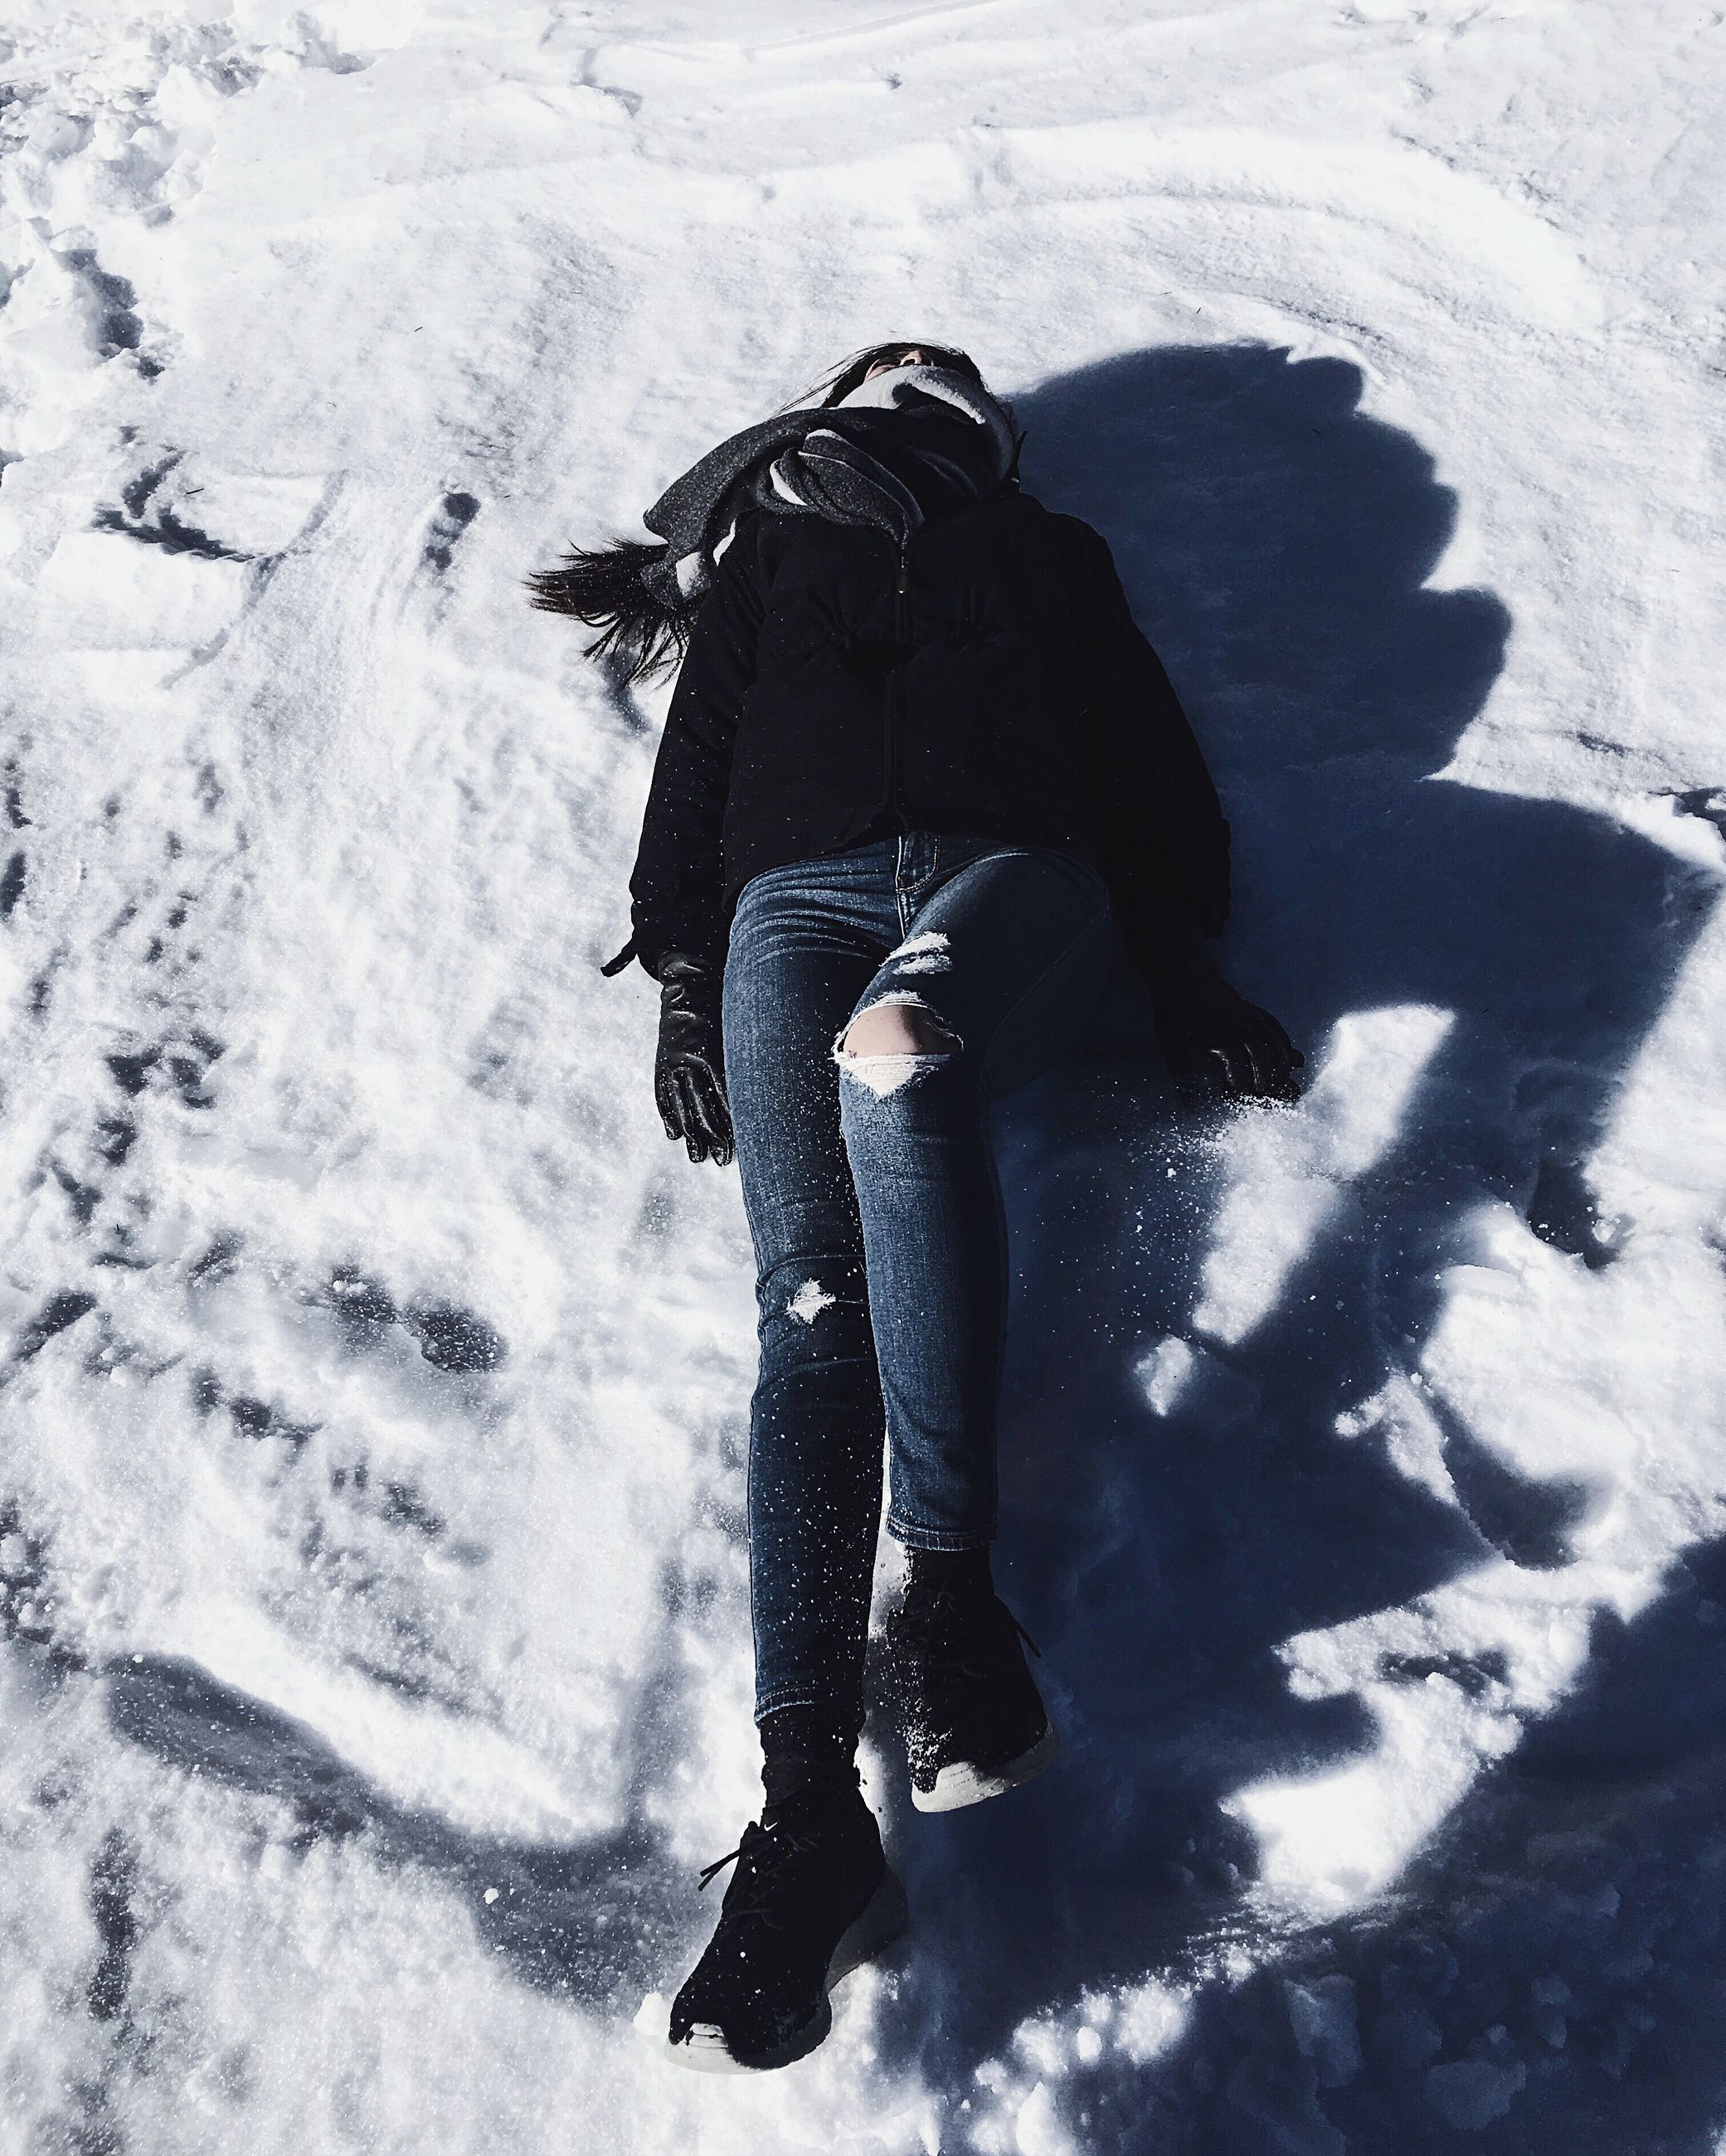 lifestyles, leisure activity, winter, snow, high angle view, cold temperature, full length, standing, shadow, season, warm clothing, sunlight, three quarter length, outdoors, day, weather, casual clothing, young adult